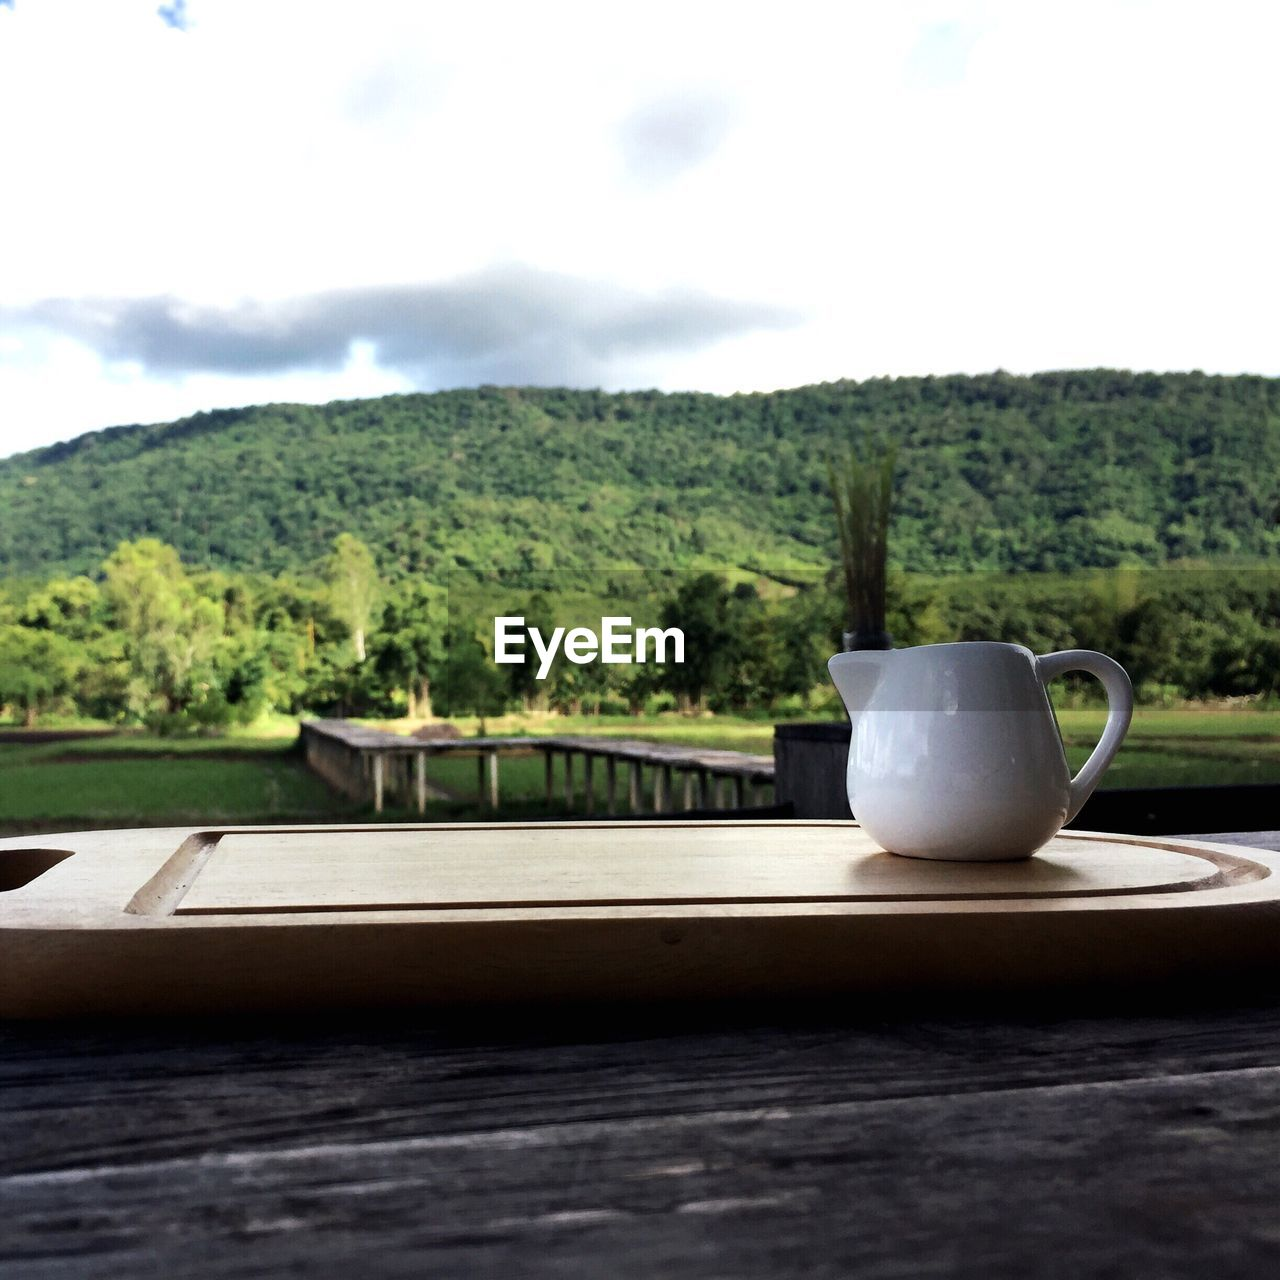 tree, plant, cup, table, sky, mug, no people, nature, day, wood - material, growth, food and drink, drink, green color, coffee cup, outdoors, railing, refreshment, saucer, tea cup, crockery